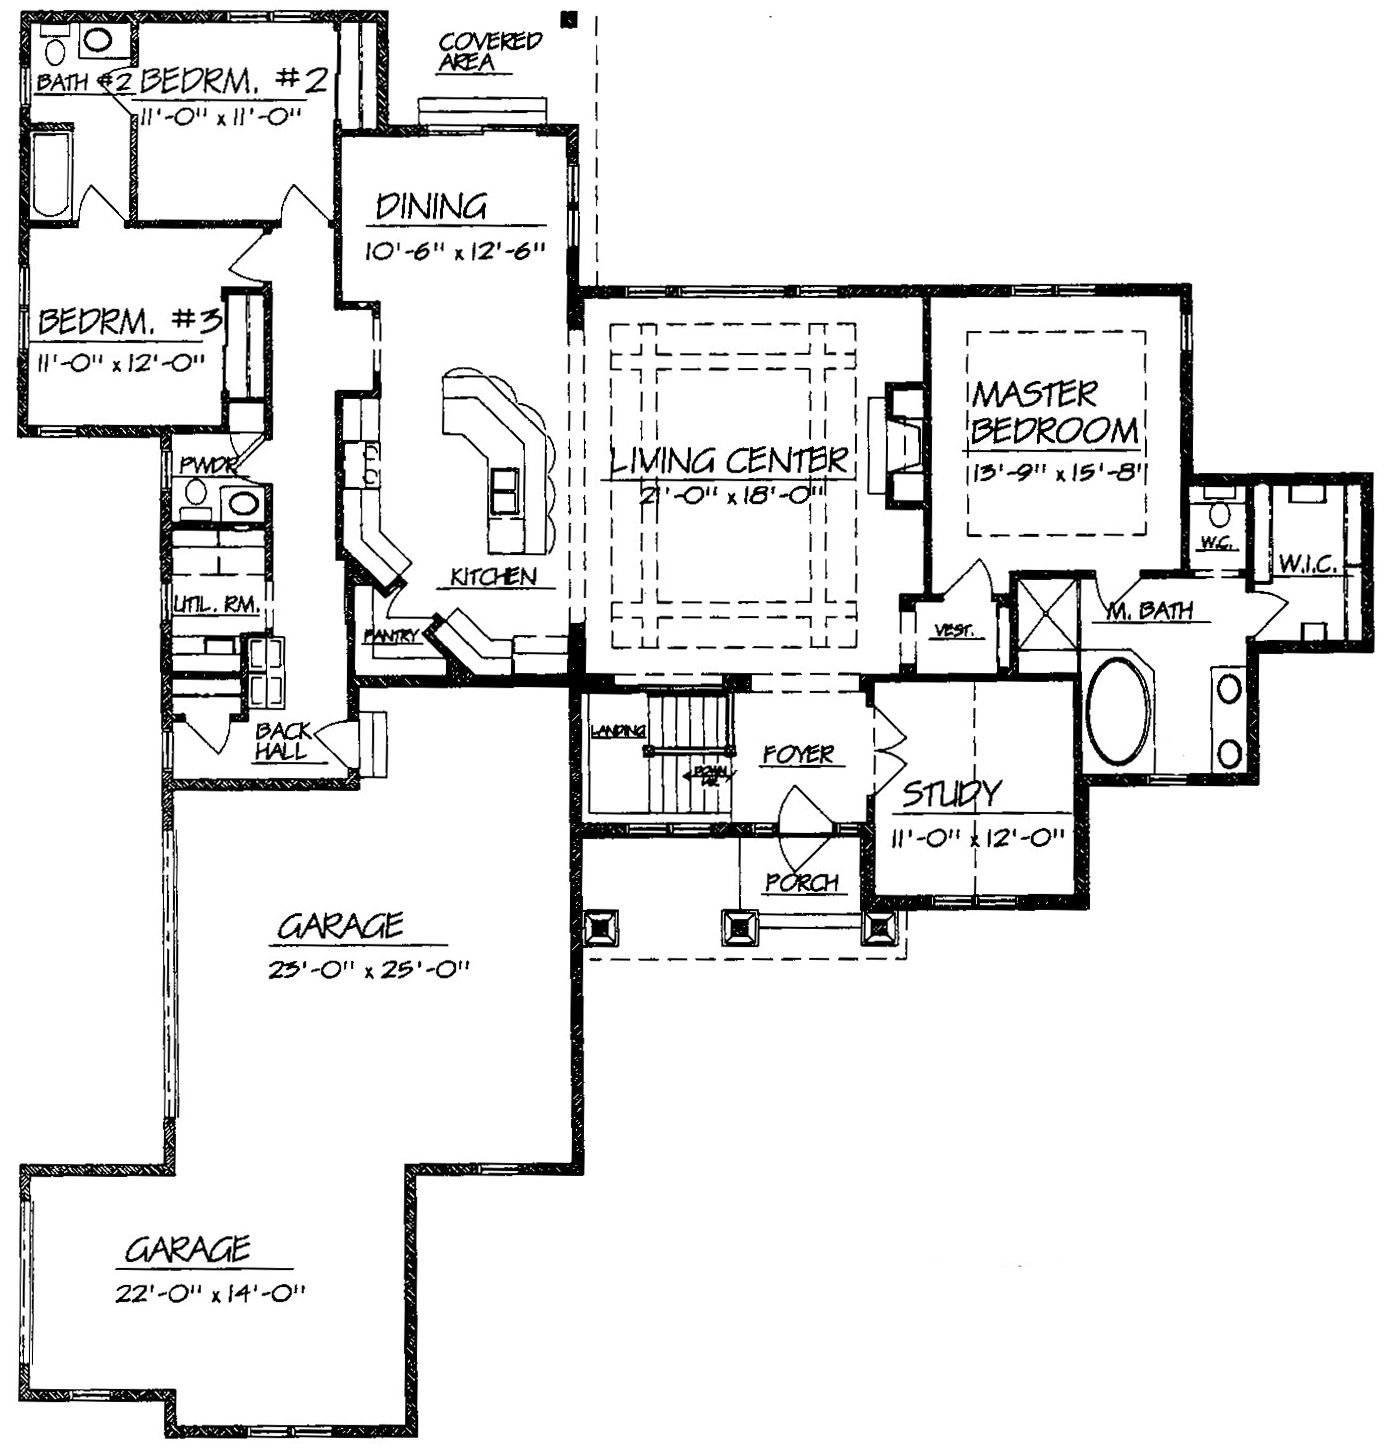 floor plans for ranch homes for $130000 | Floor Plan of ranch home ...